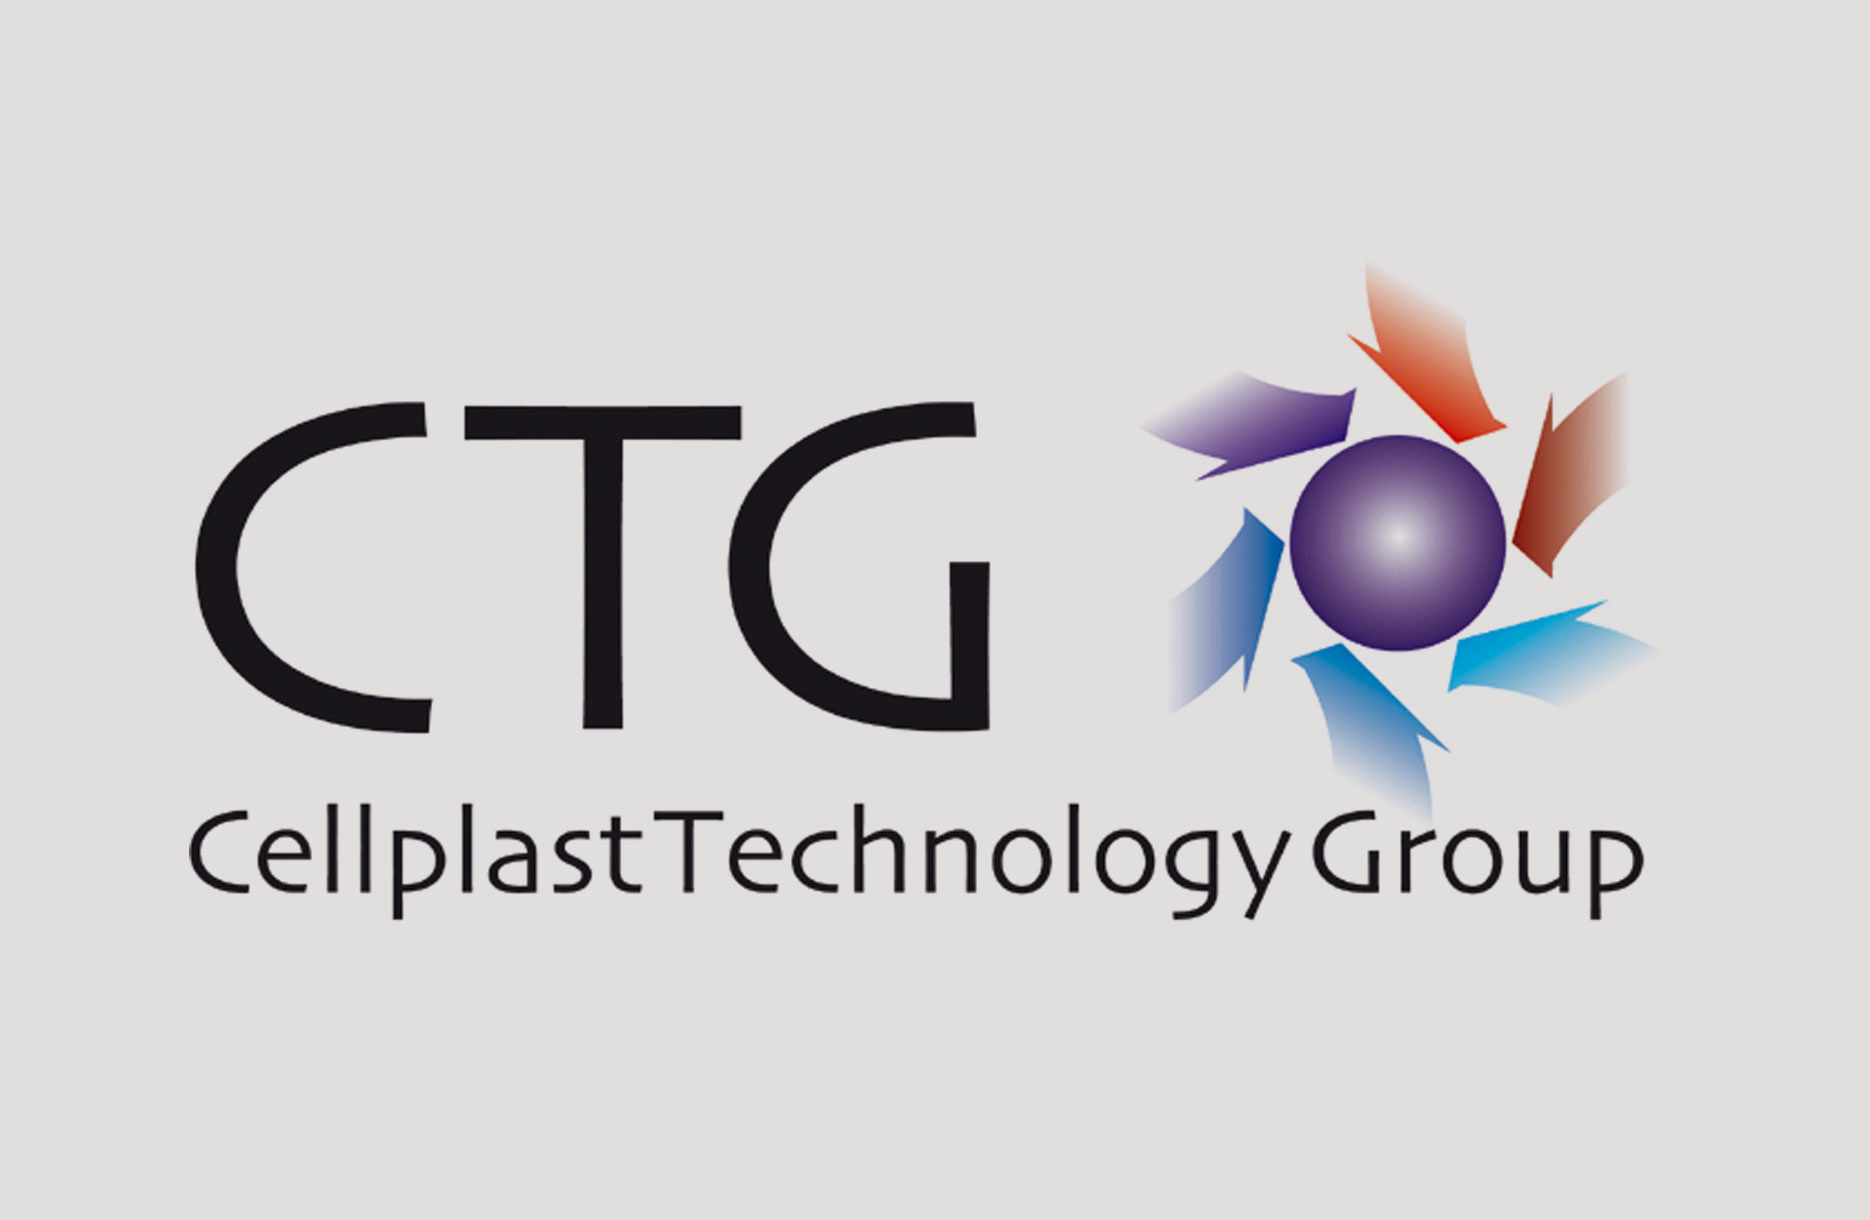 CTG Cell Plast Technology Group